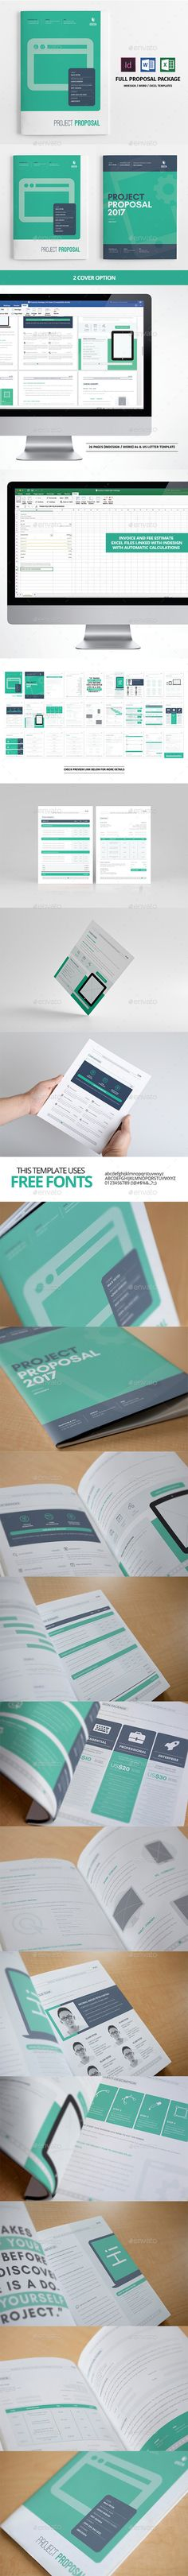 28 Page Full Proposal Package A4 / US Letter Template InDesign INDD #design Download: http://graphicriver.net/item/28-page-full-proposal-package-a4-us-letter/14016978?ref=ksioks